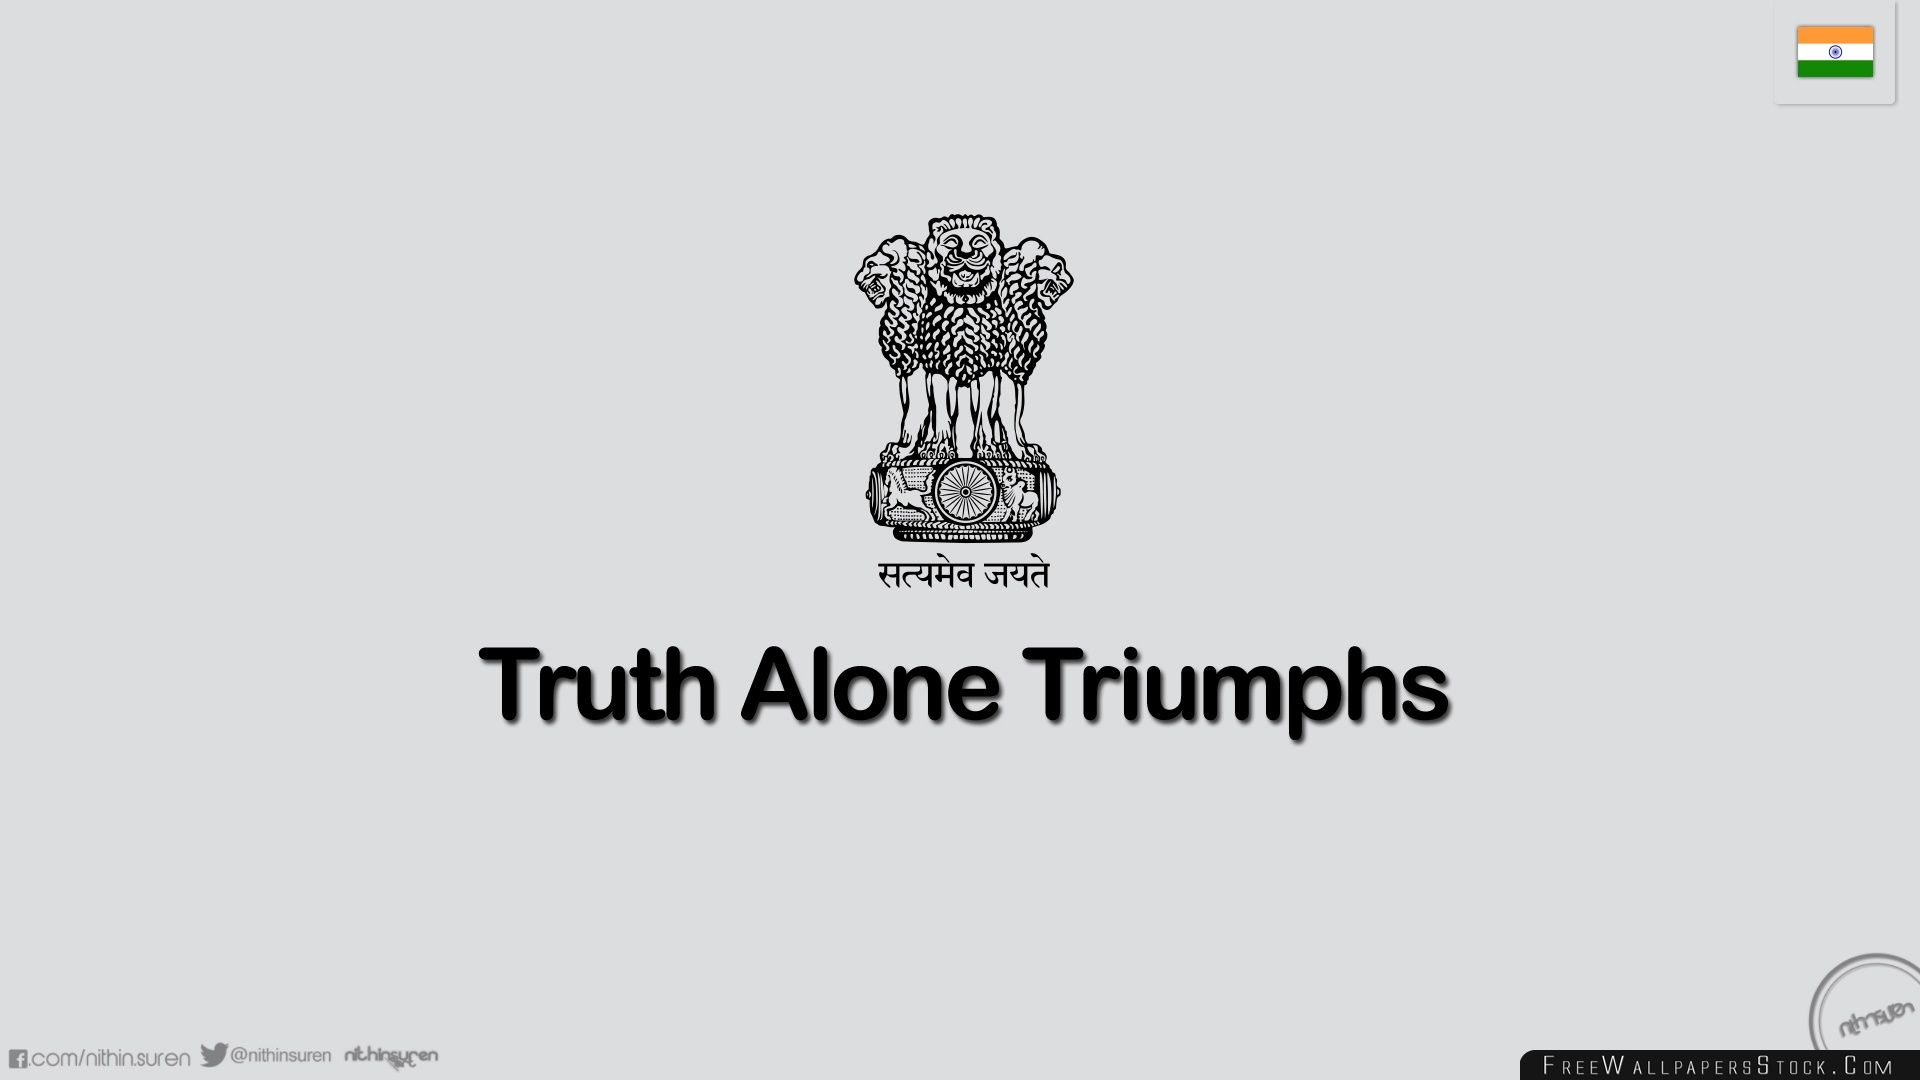 Download Free Wallpaper Truth Alone Triumphs Nithinsuren